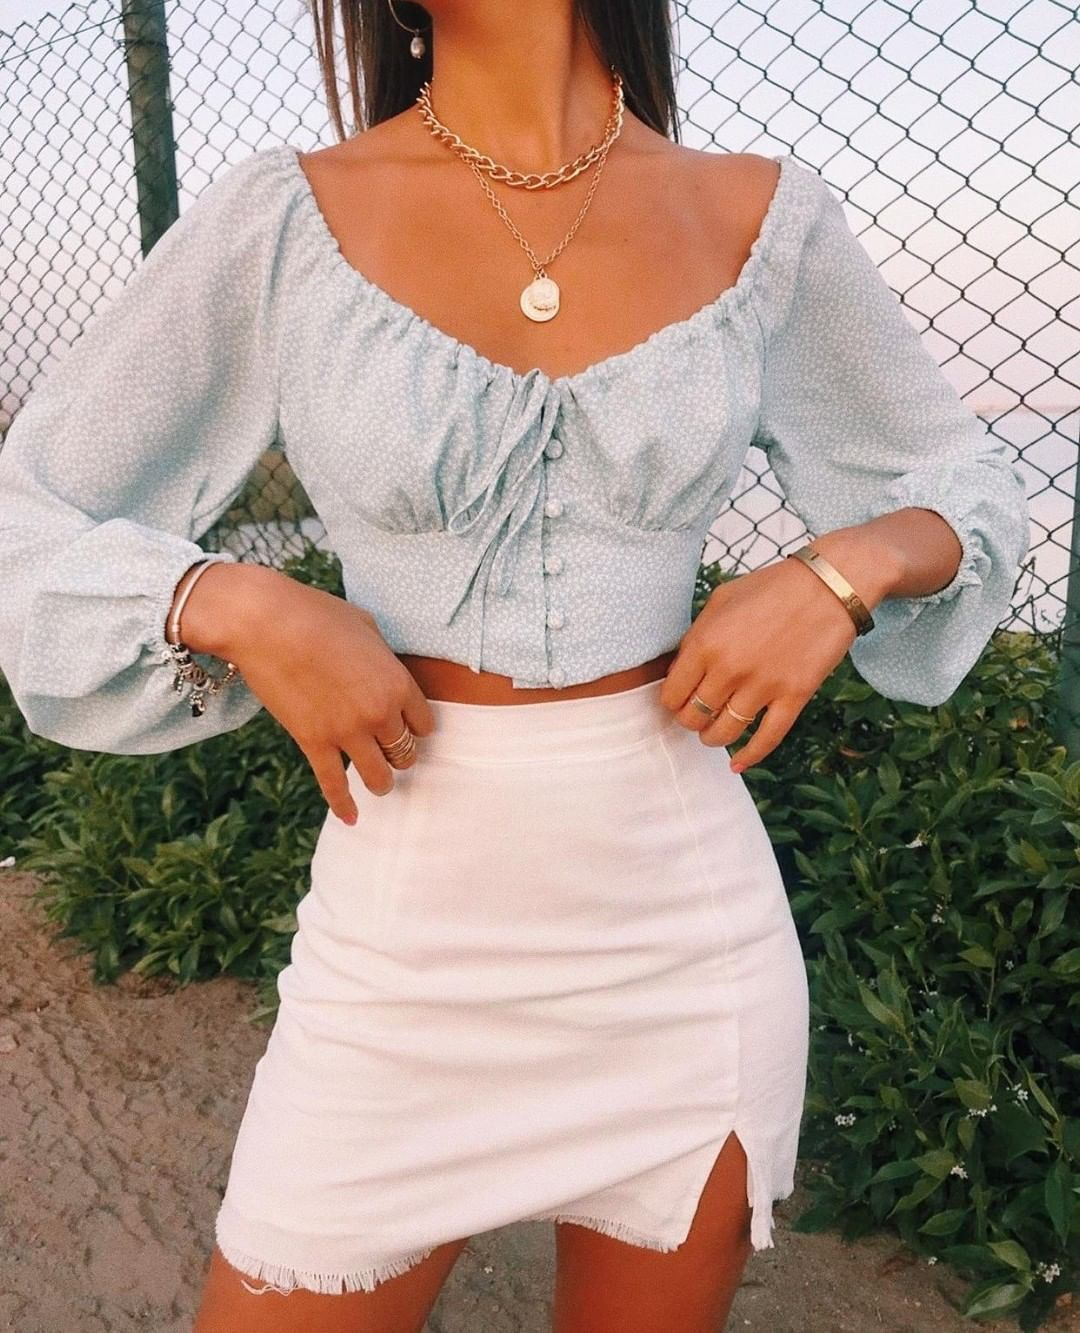 """VERGE GIRL on Instagram: """"Darling @luanabarron in our… NAMED DESIRE MINI SKIRT in WHITE ✵ worn with our  ECCENTRIC INDIVIDUALS TOP in SKY  Shop link in photo"""""""